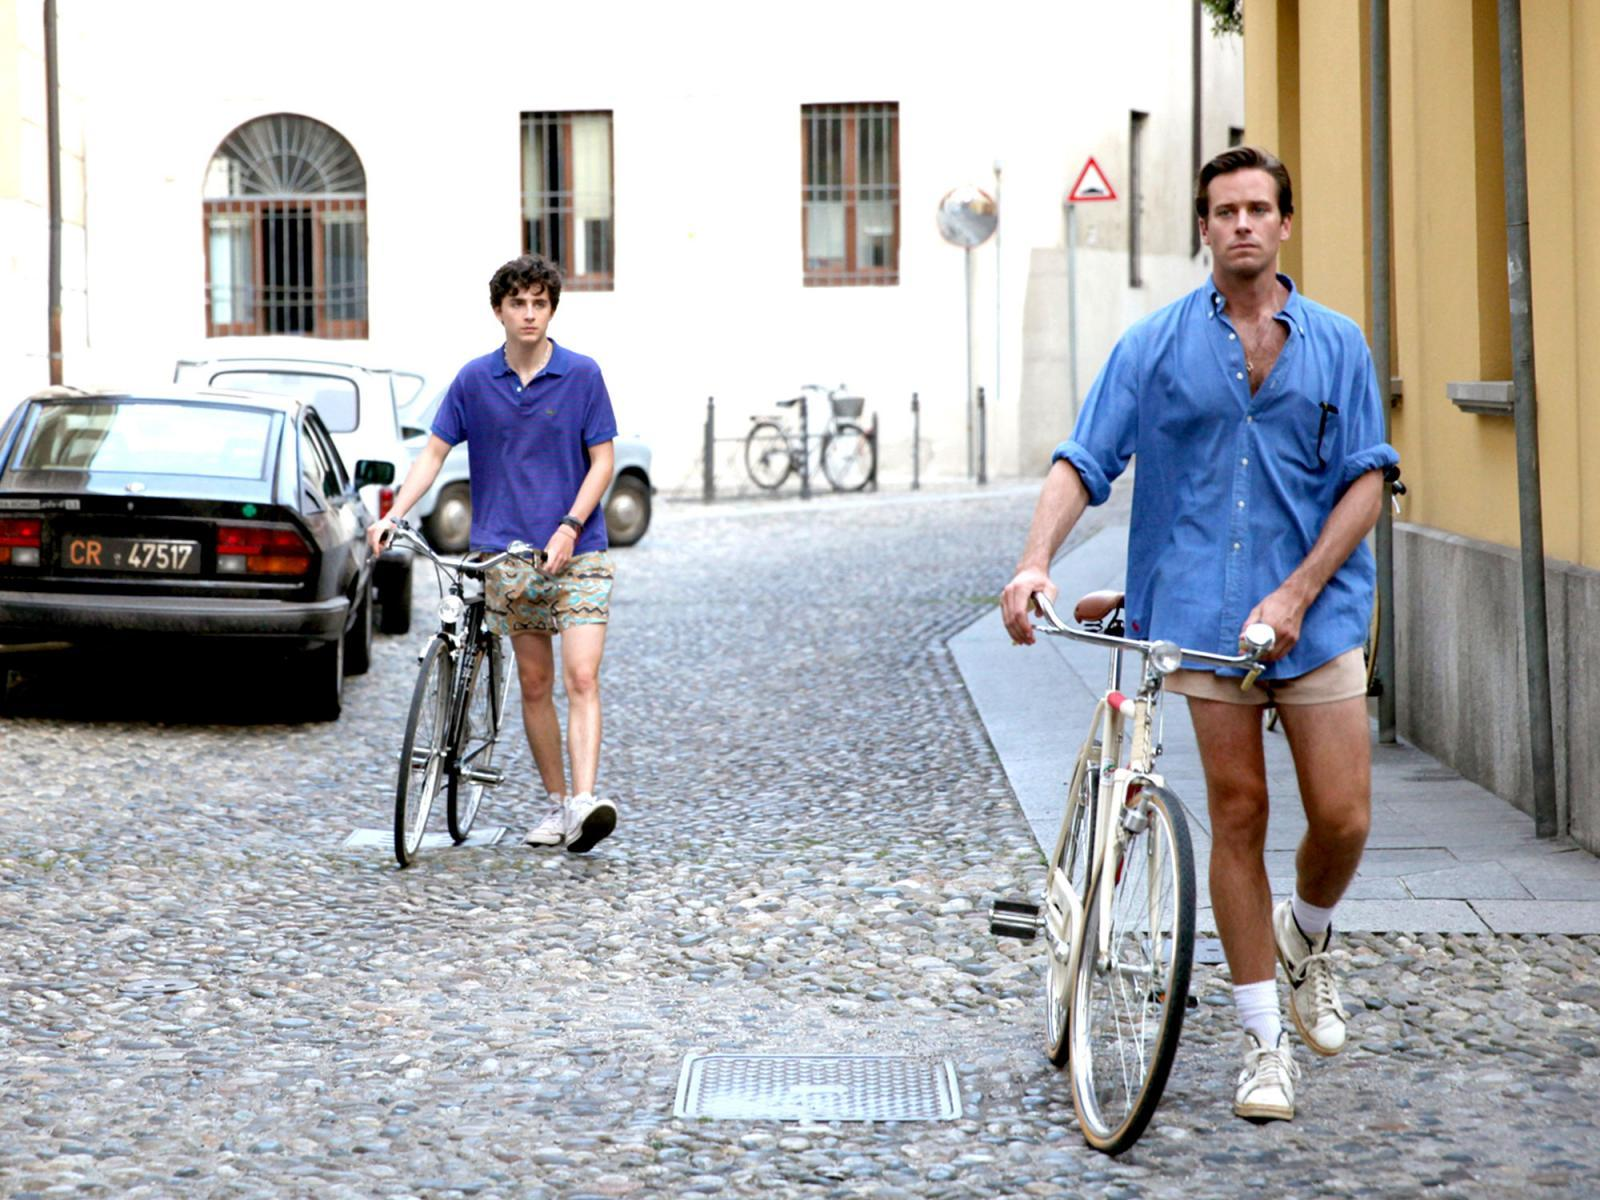 CALL ME BY YOUR NAME - Timothée Chalamet y Armie Hammer